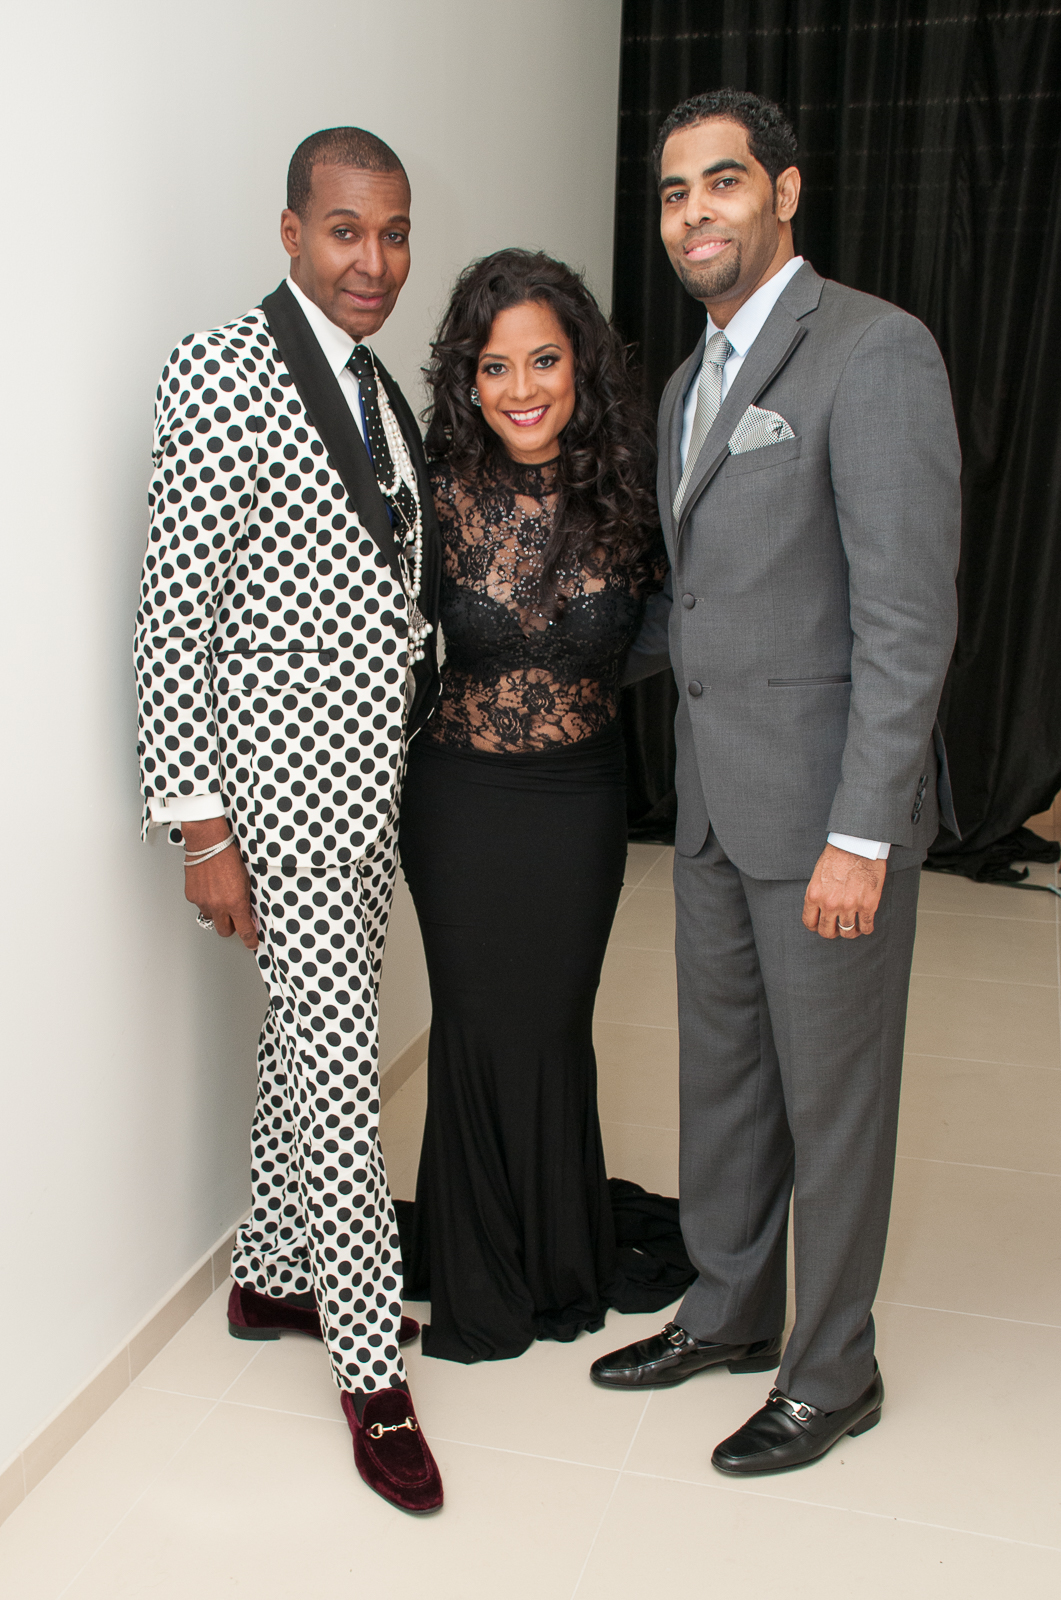 Behind-The-Scenes: Lisa Nicole Cloud's 'Fashion For A Cause' Charity Event